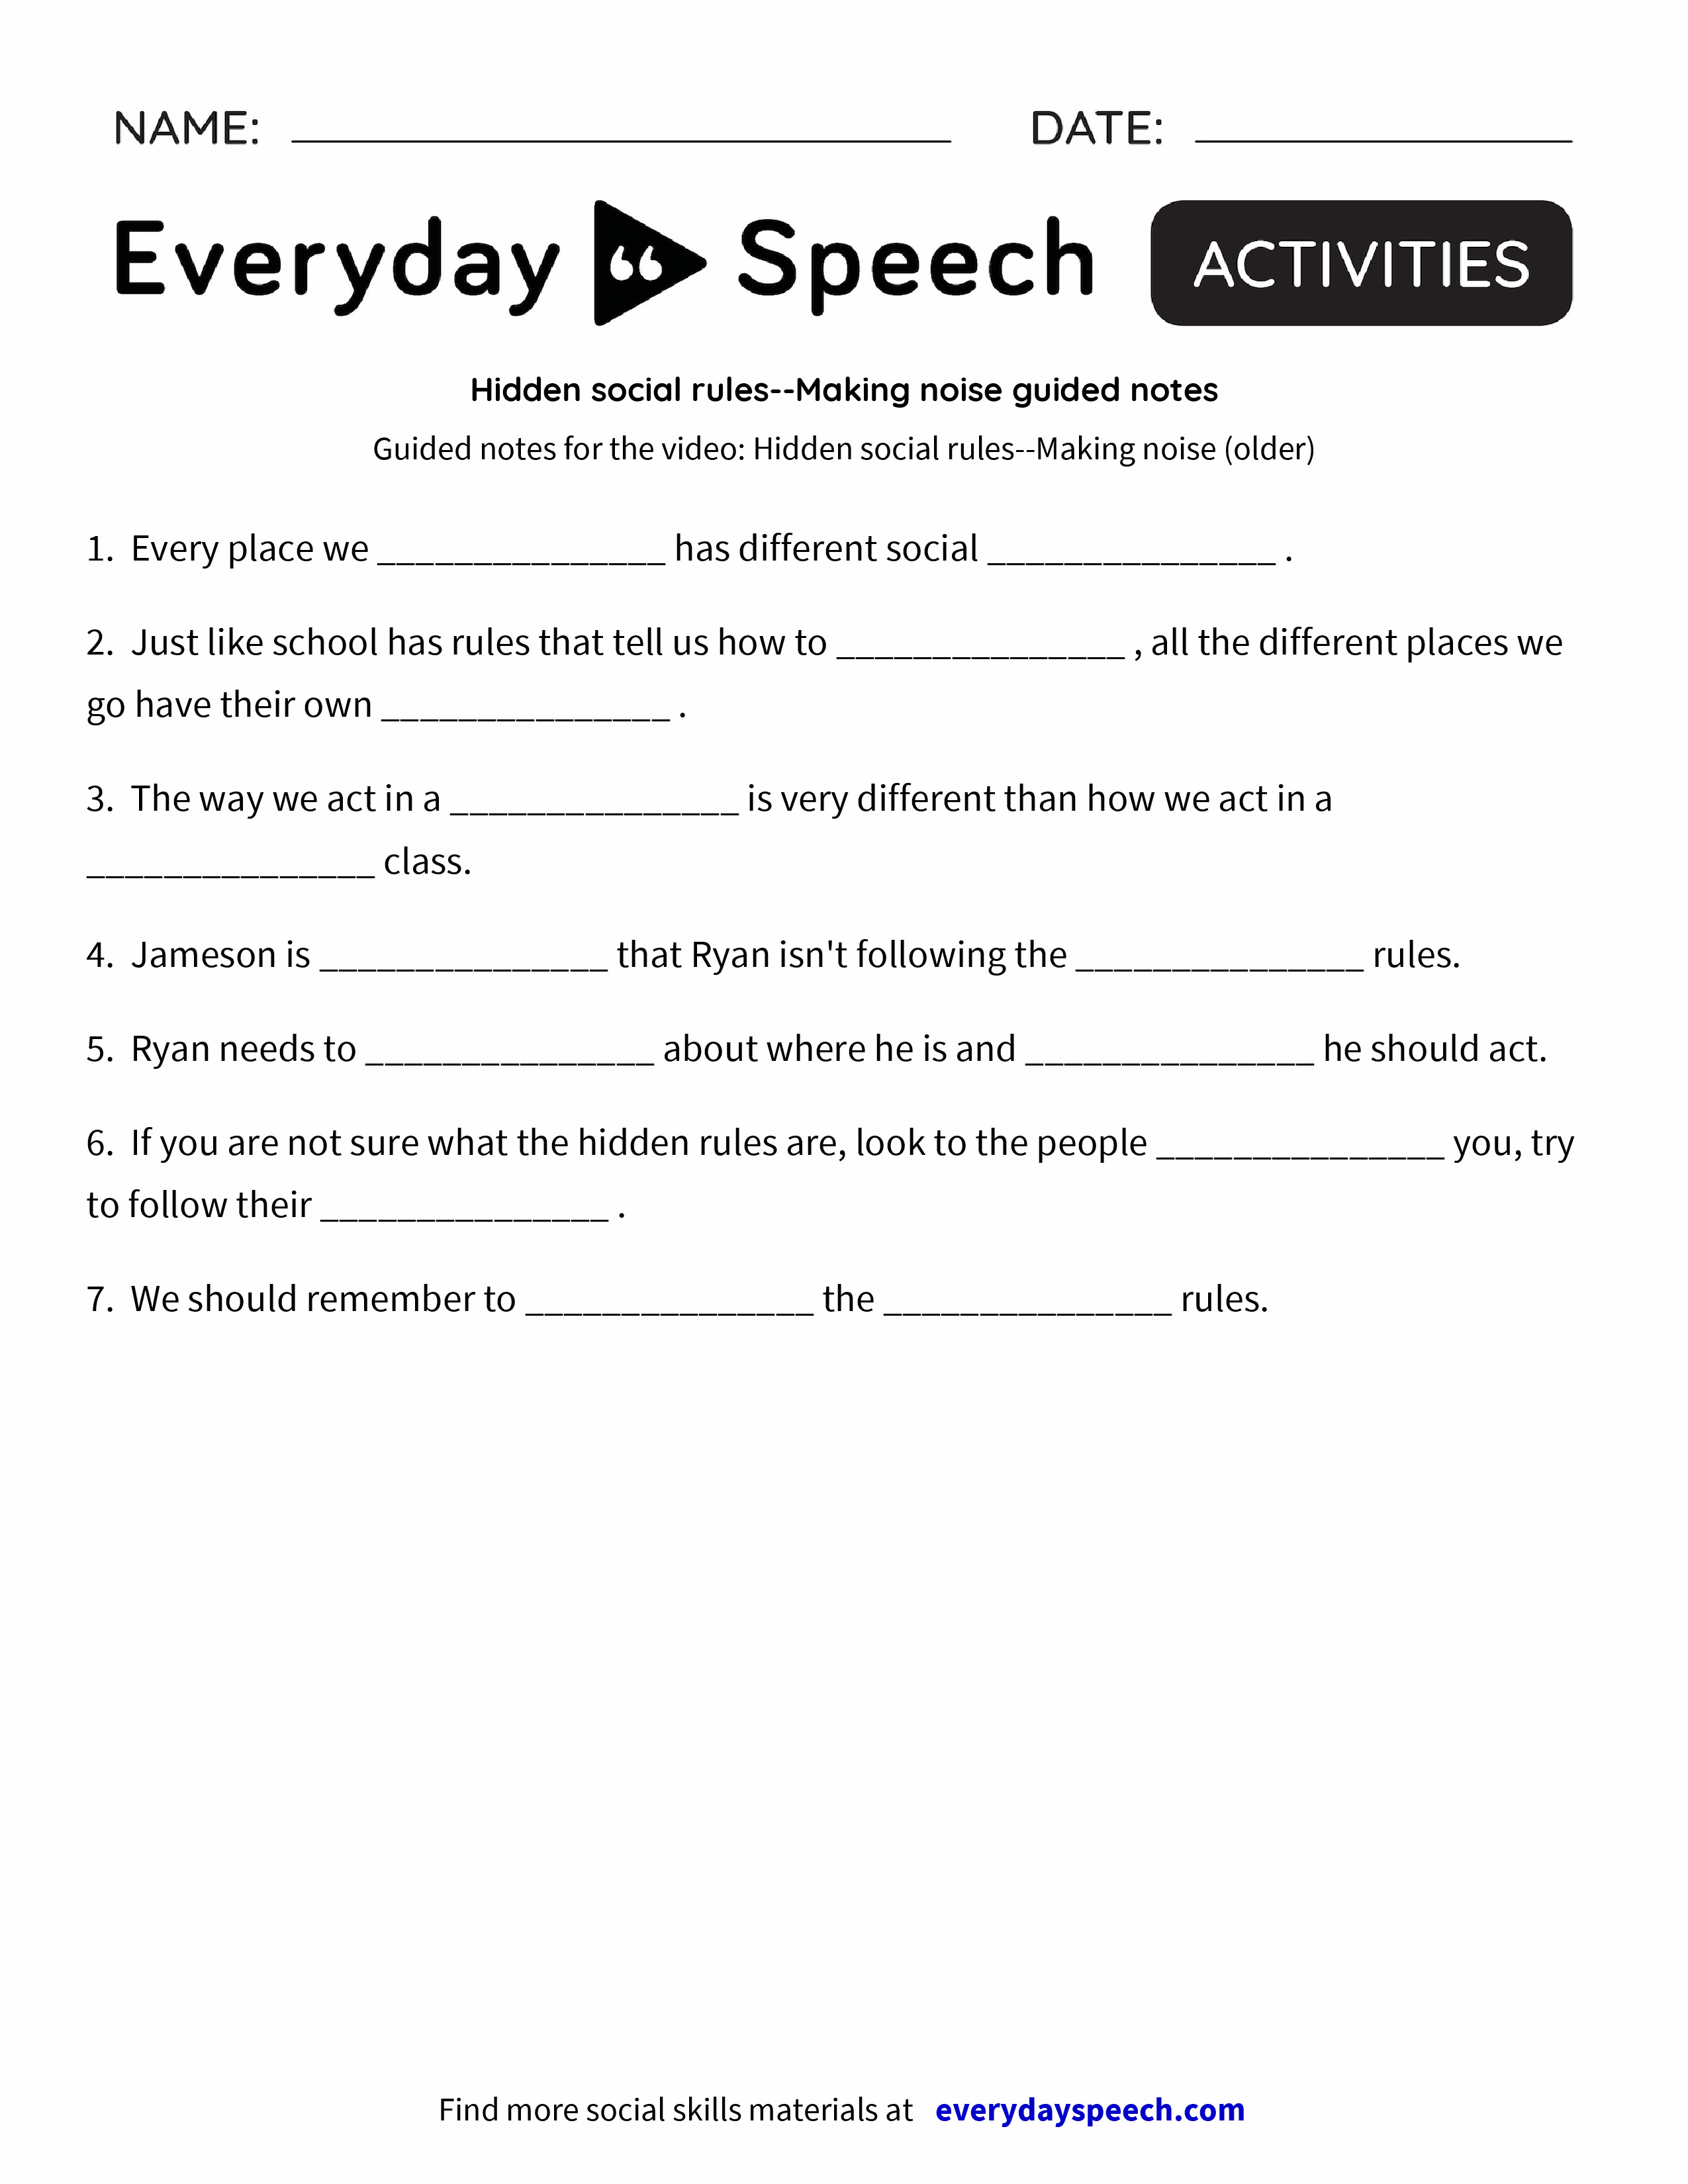 Uncategorized Divisibility Rules Worksheets uncategorized rules of divisibility worksheet bidwellranchcam class best hidden social rulesmaking noise guided notes everyday